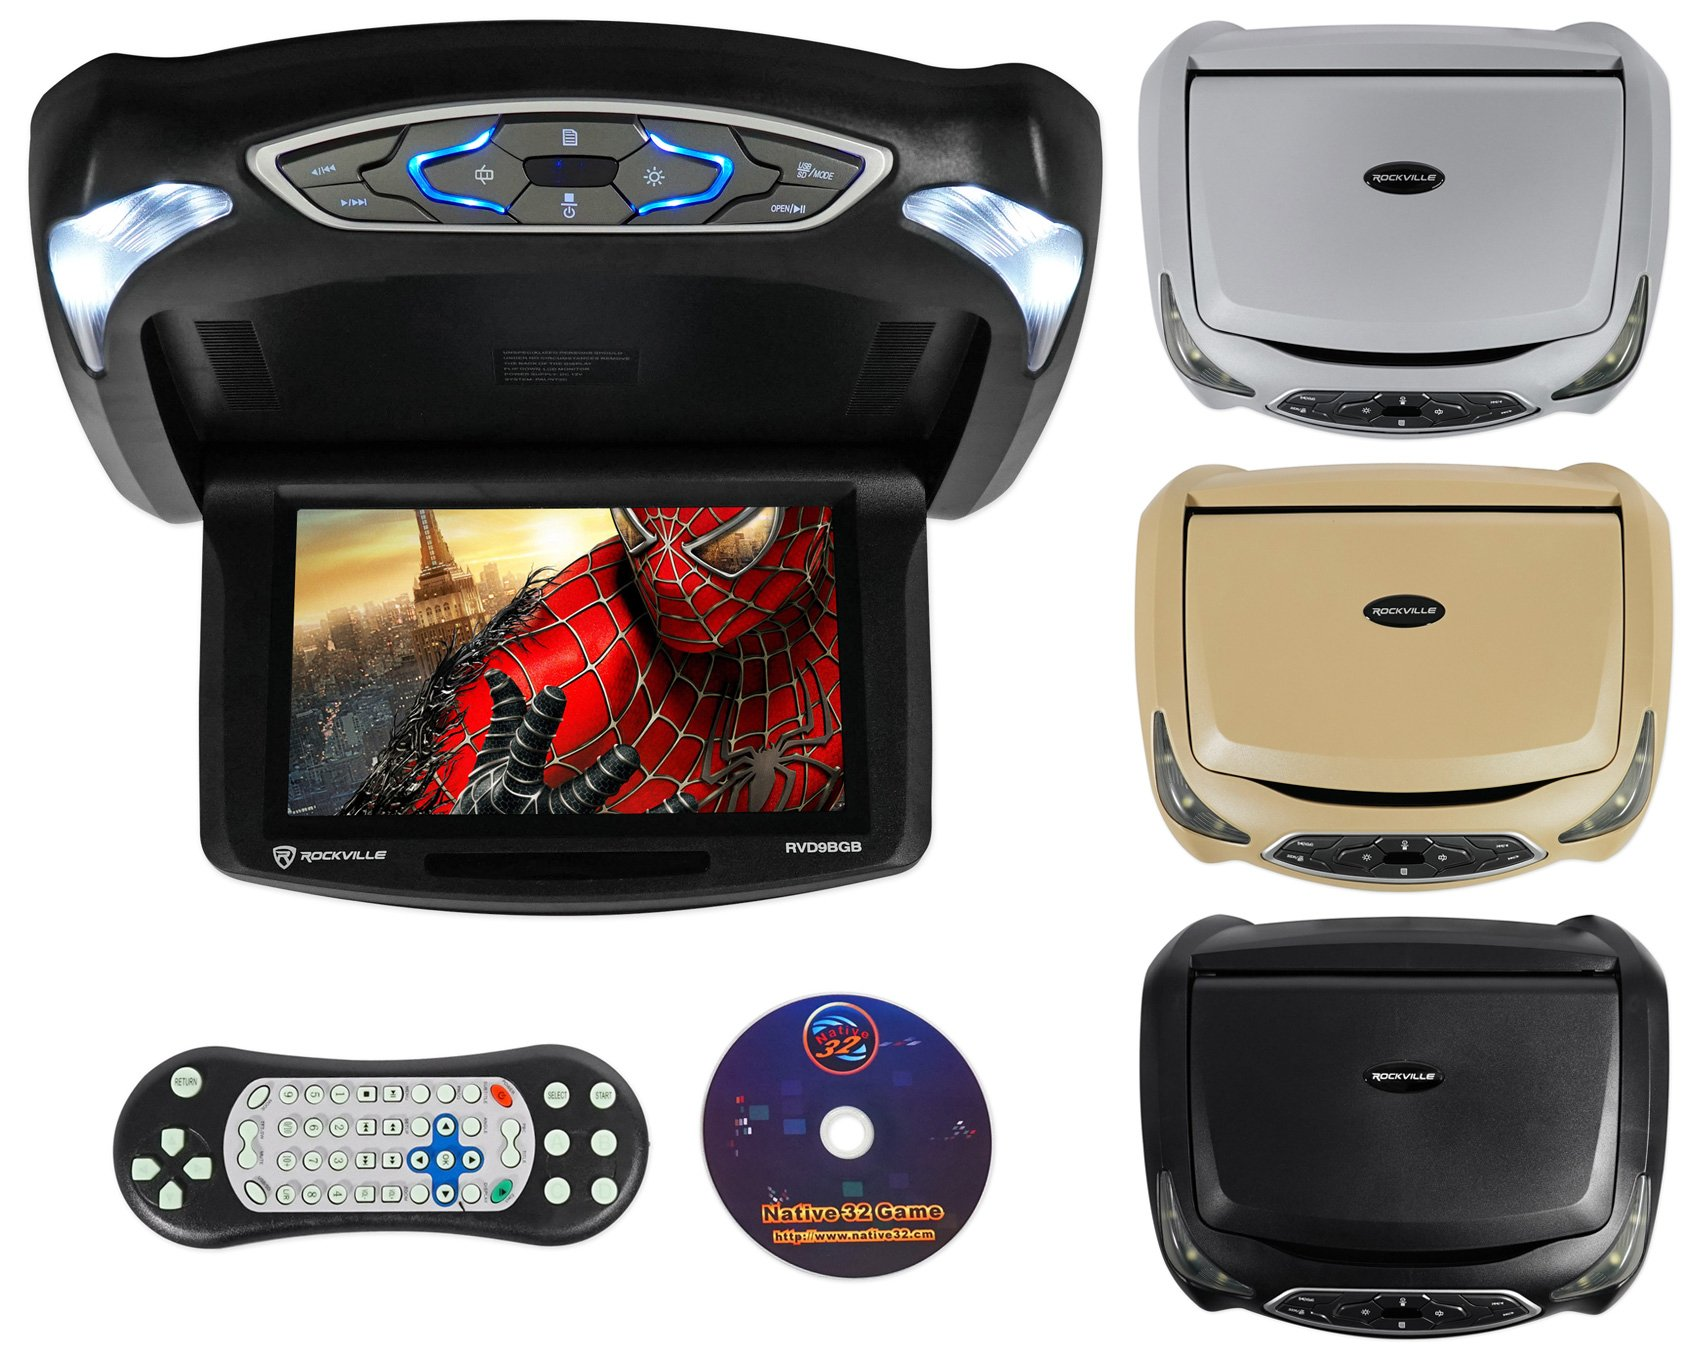 Rockville RVD9BGB Black/Grey/Beige 9'' Flip Down Car Monitor w DVD/HDMI/Games/USB